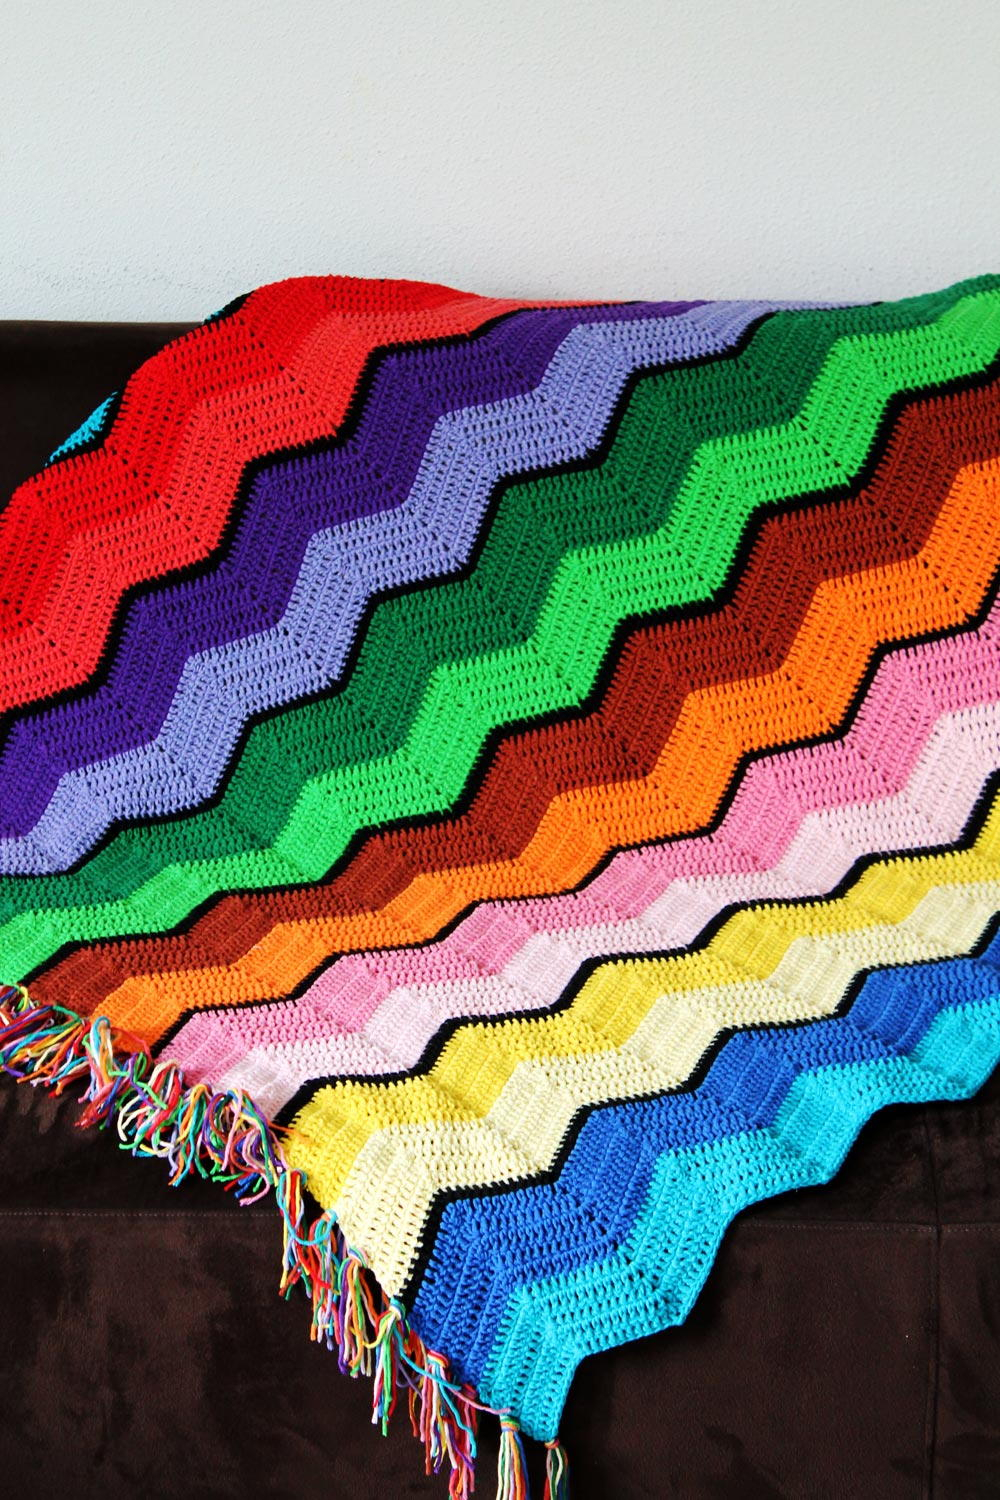 51 Free Crochet Blanket Patterns for Beginners | FaveCrafts.com